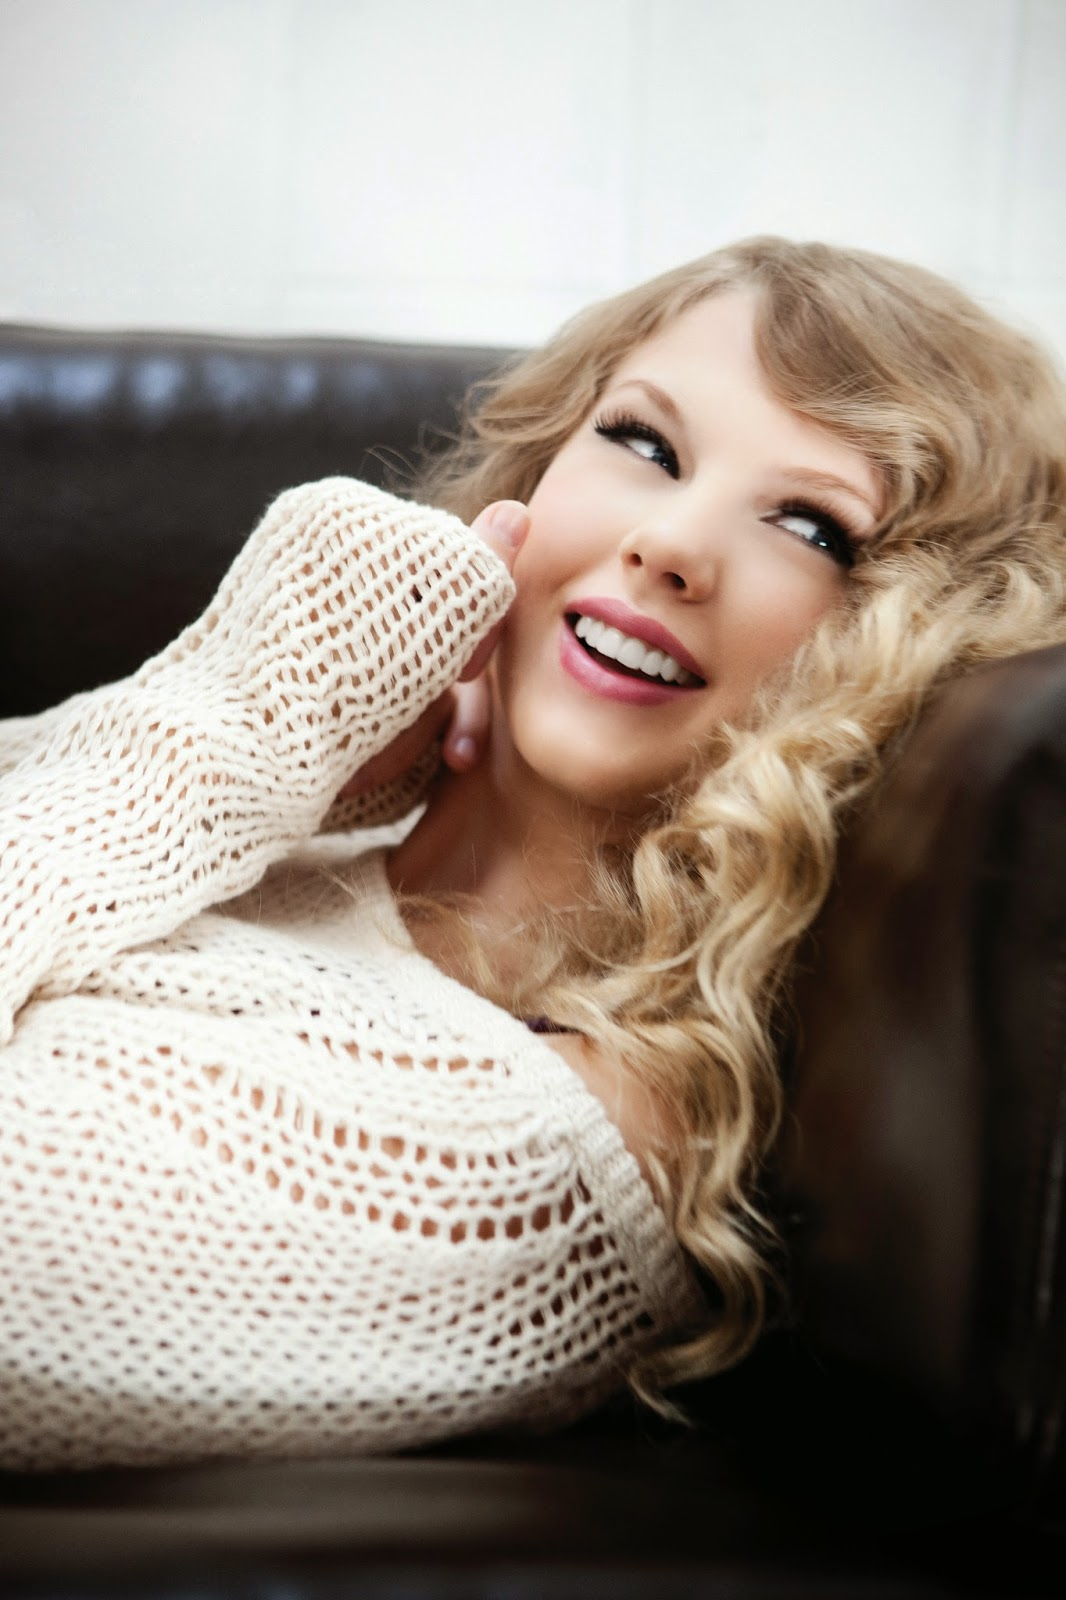 Iphone 7 Wallpaper Pinterest Taylor Swift Wallpapers High Quality Download Free